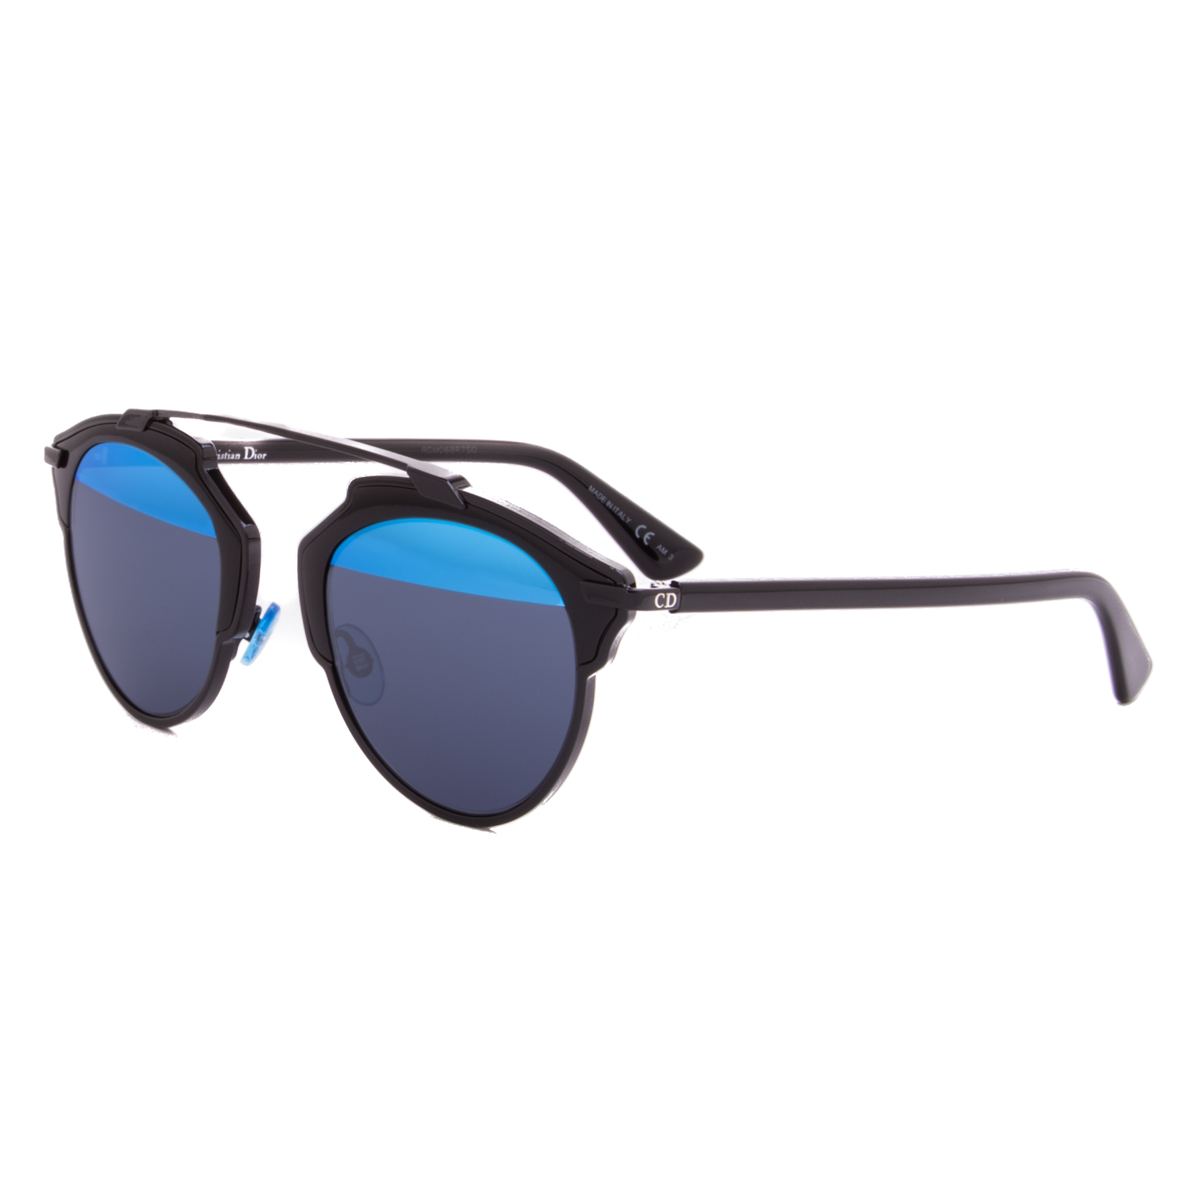 3aec9a1549ac Lady Dior Sunglasses Gls Blue Black